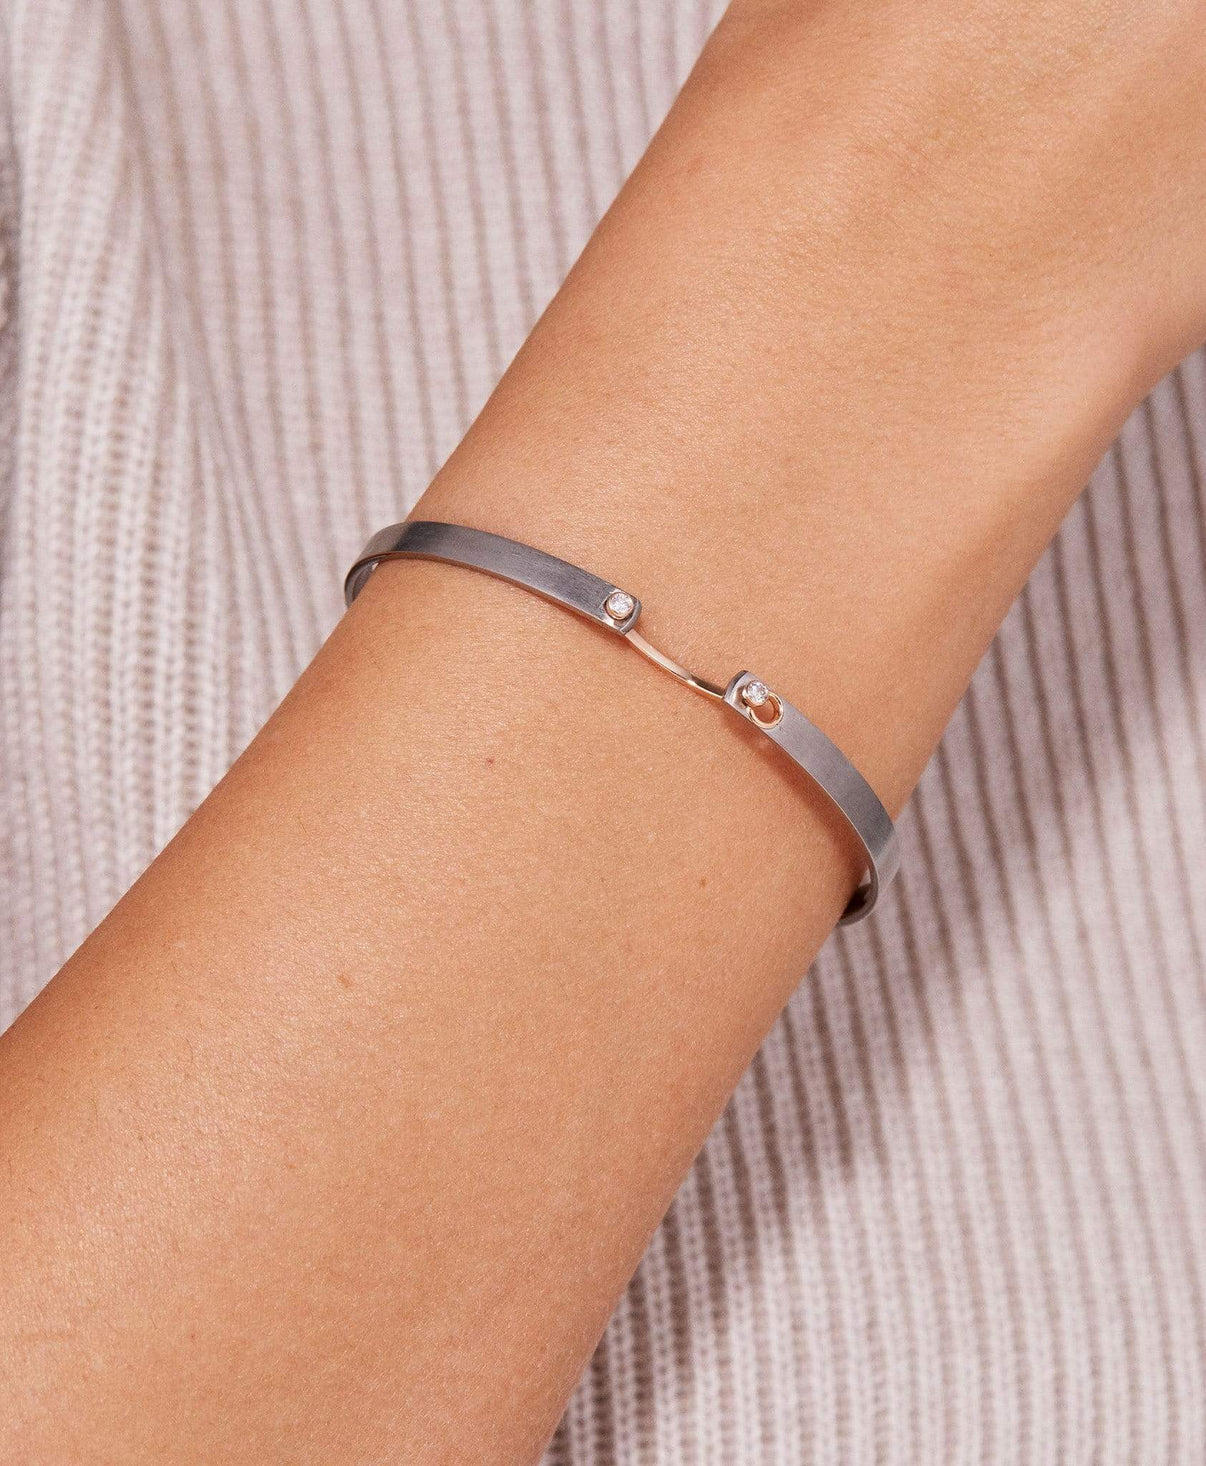 Hers Titanium Mood Bangle: Discover Luxury Fine Jewelry | Nouvel Heritage || White Gold